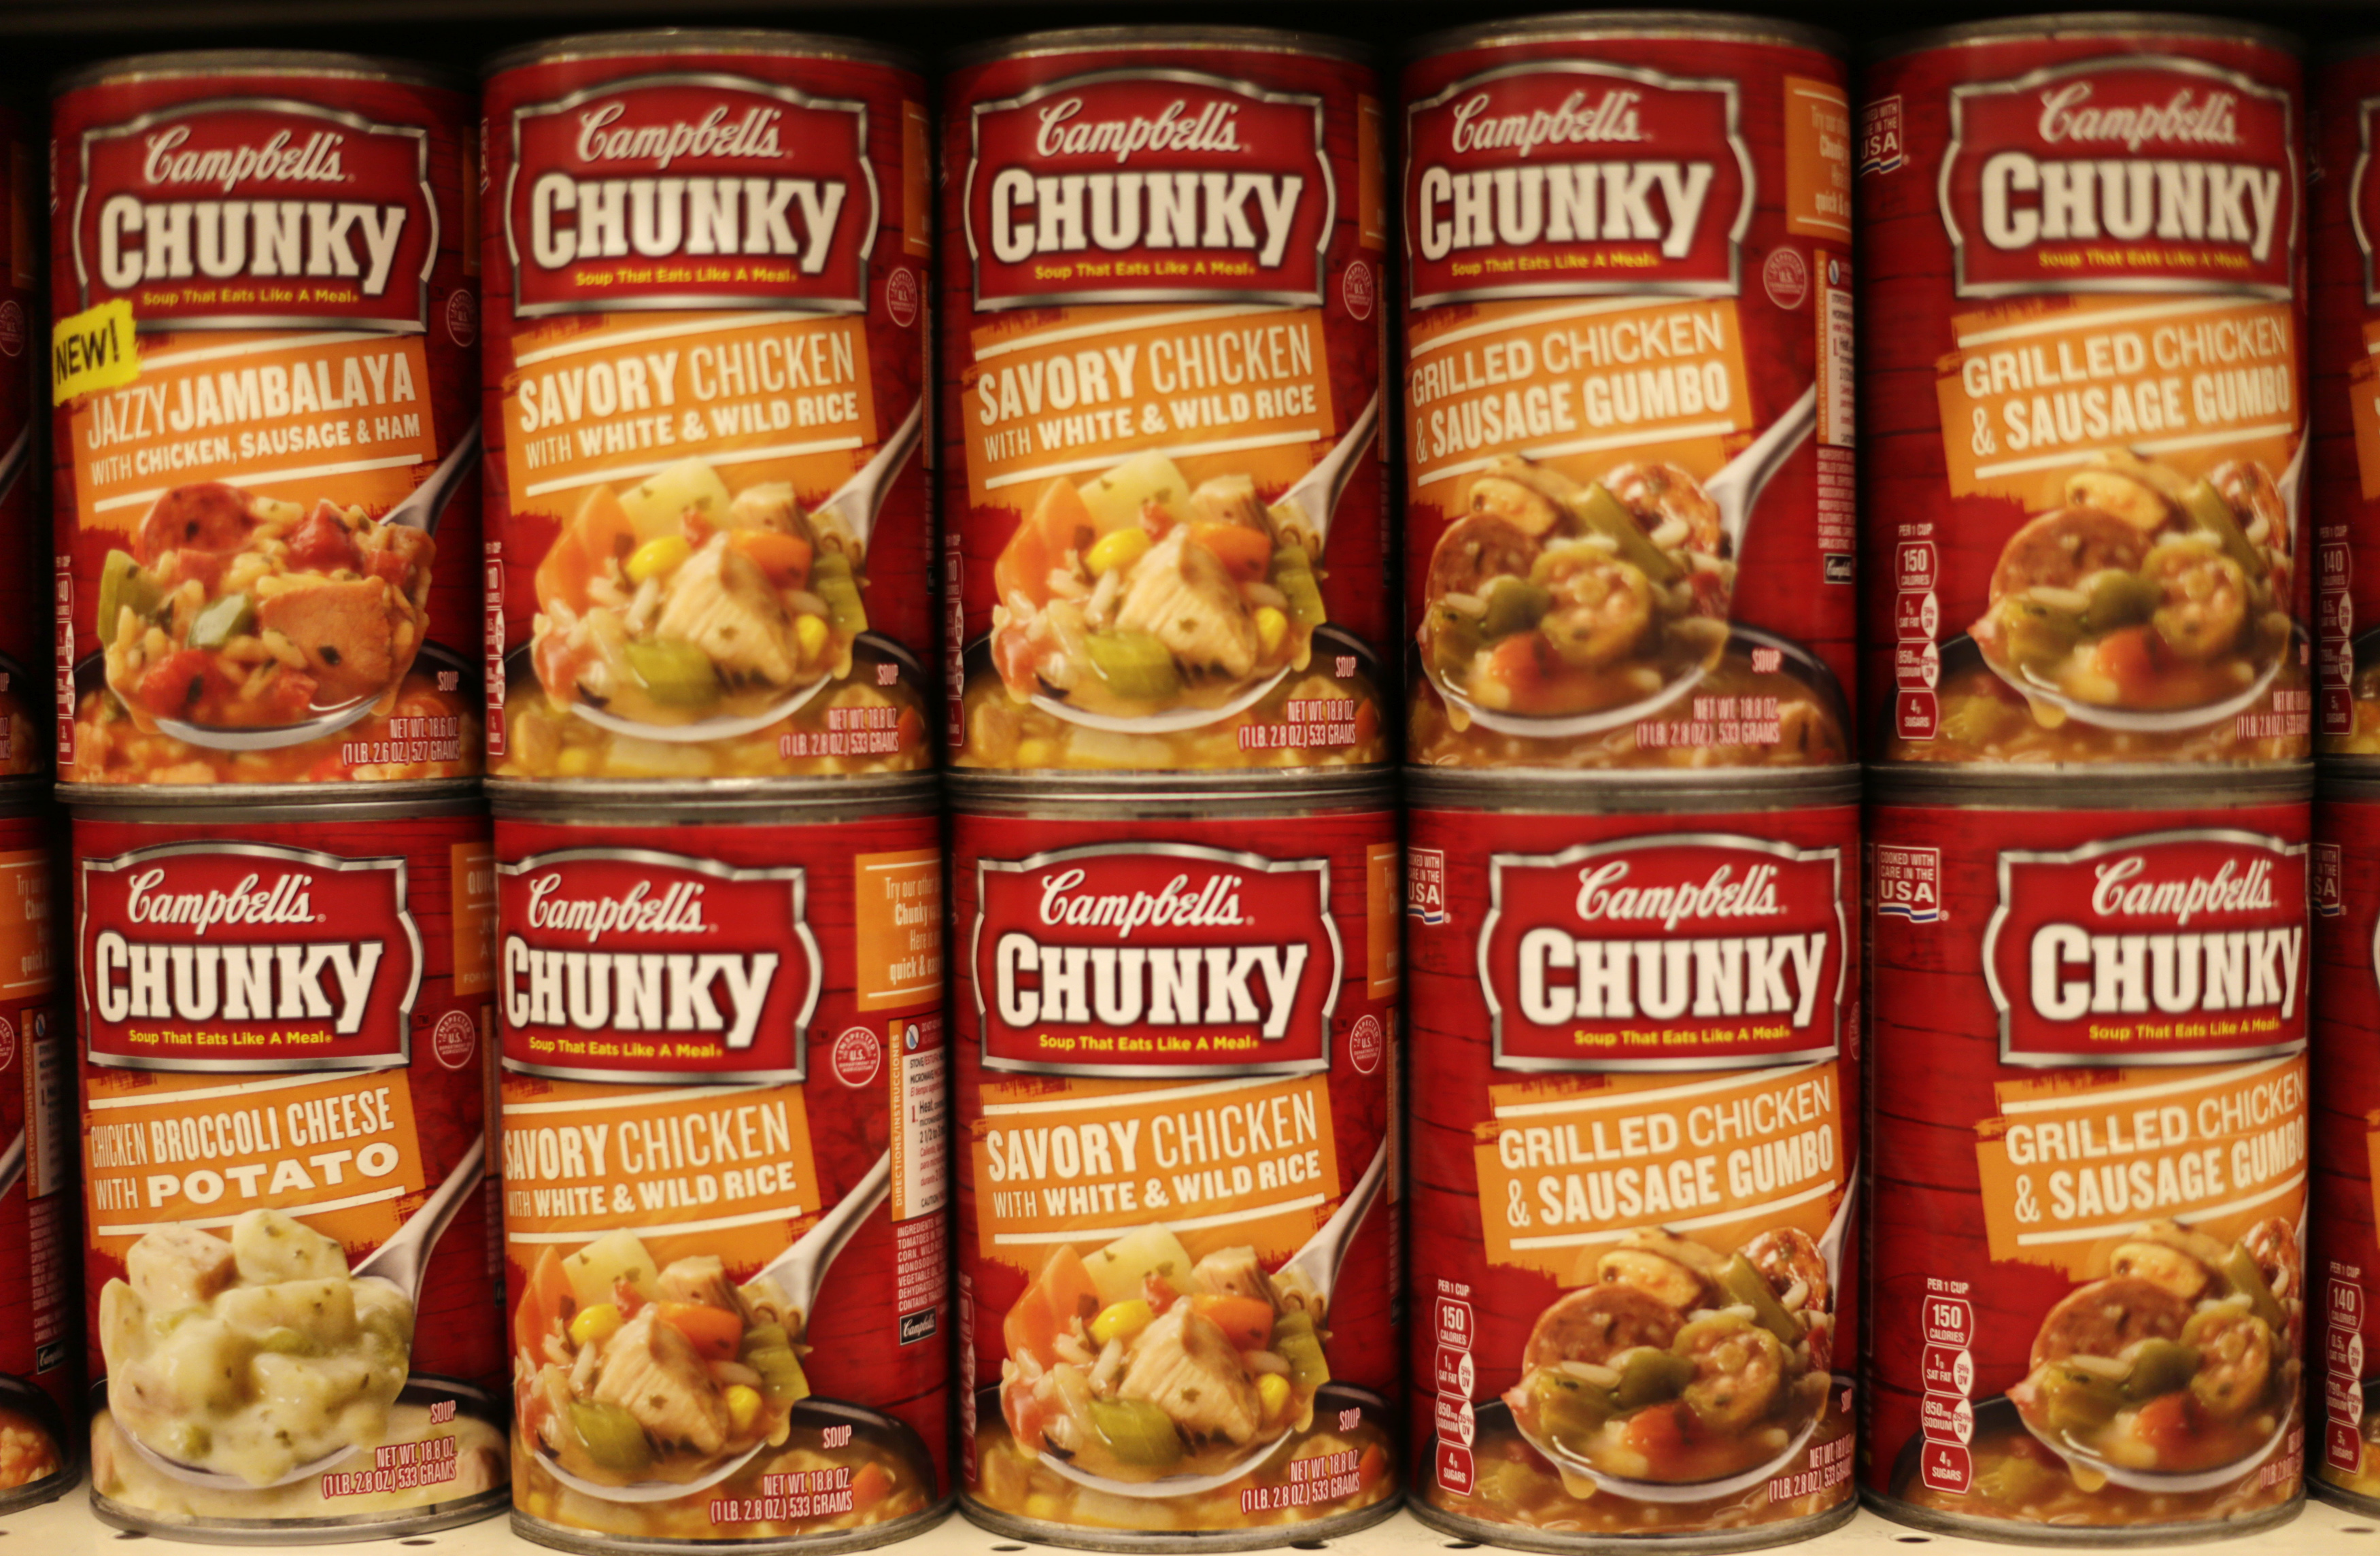 Cans of Campbell's brand Chunky soups are seen at the Safeway store in Wheaton, Maryland Feb. 13, 2015